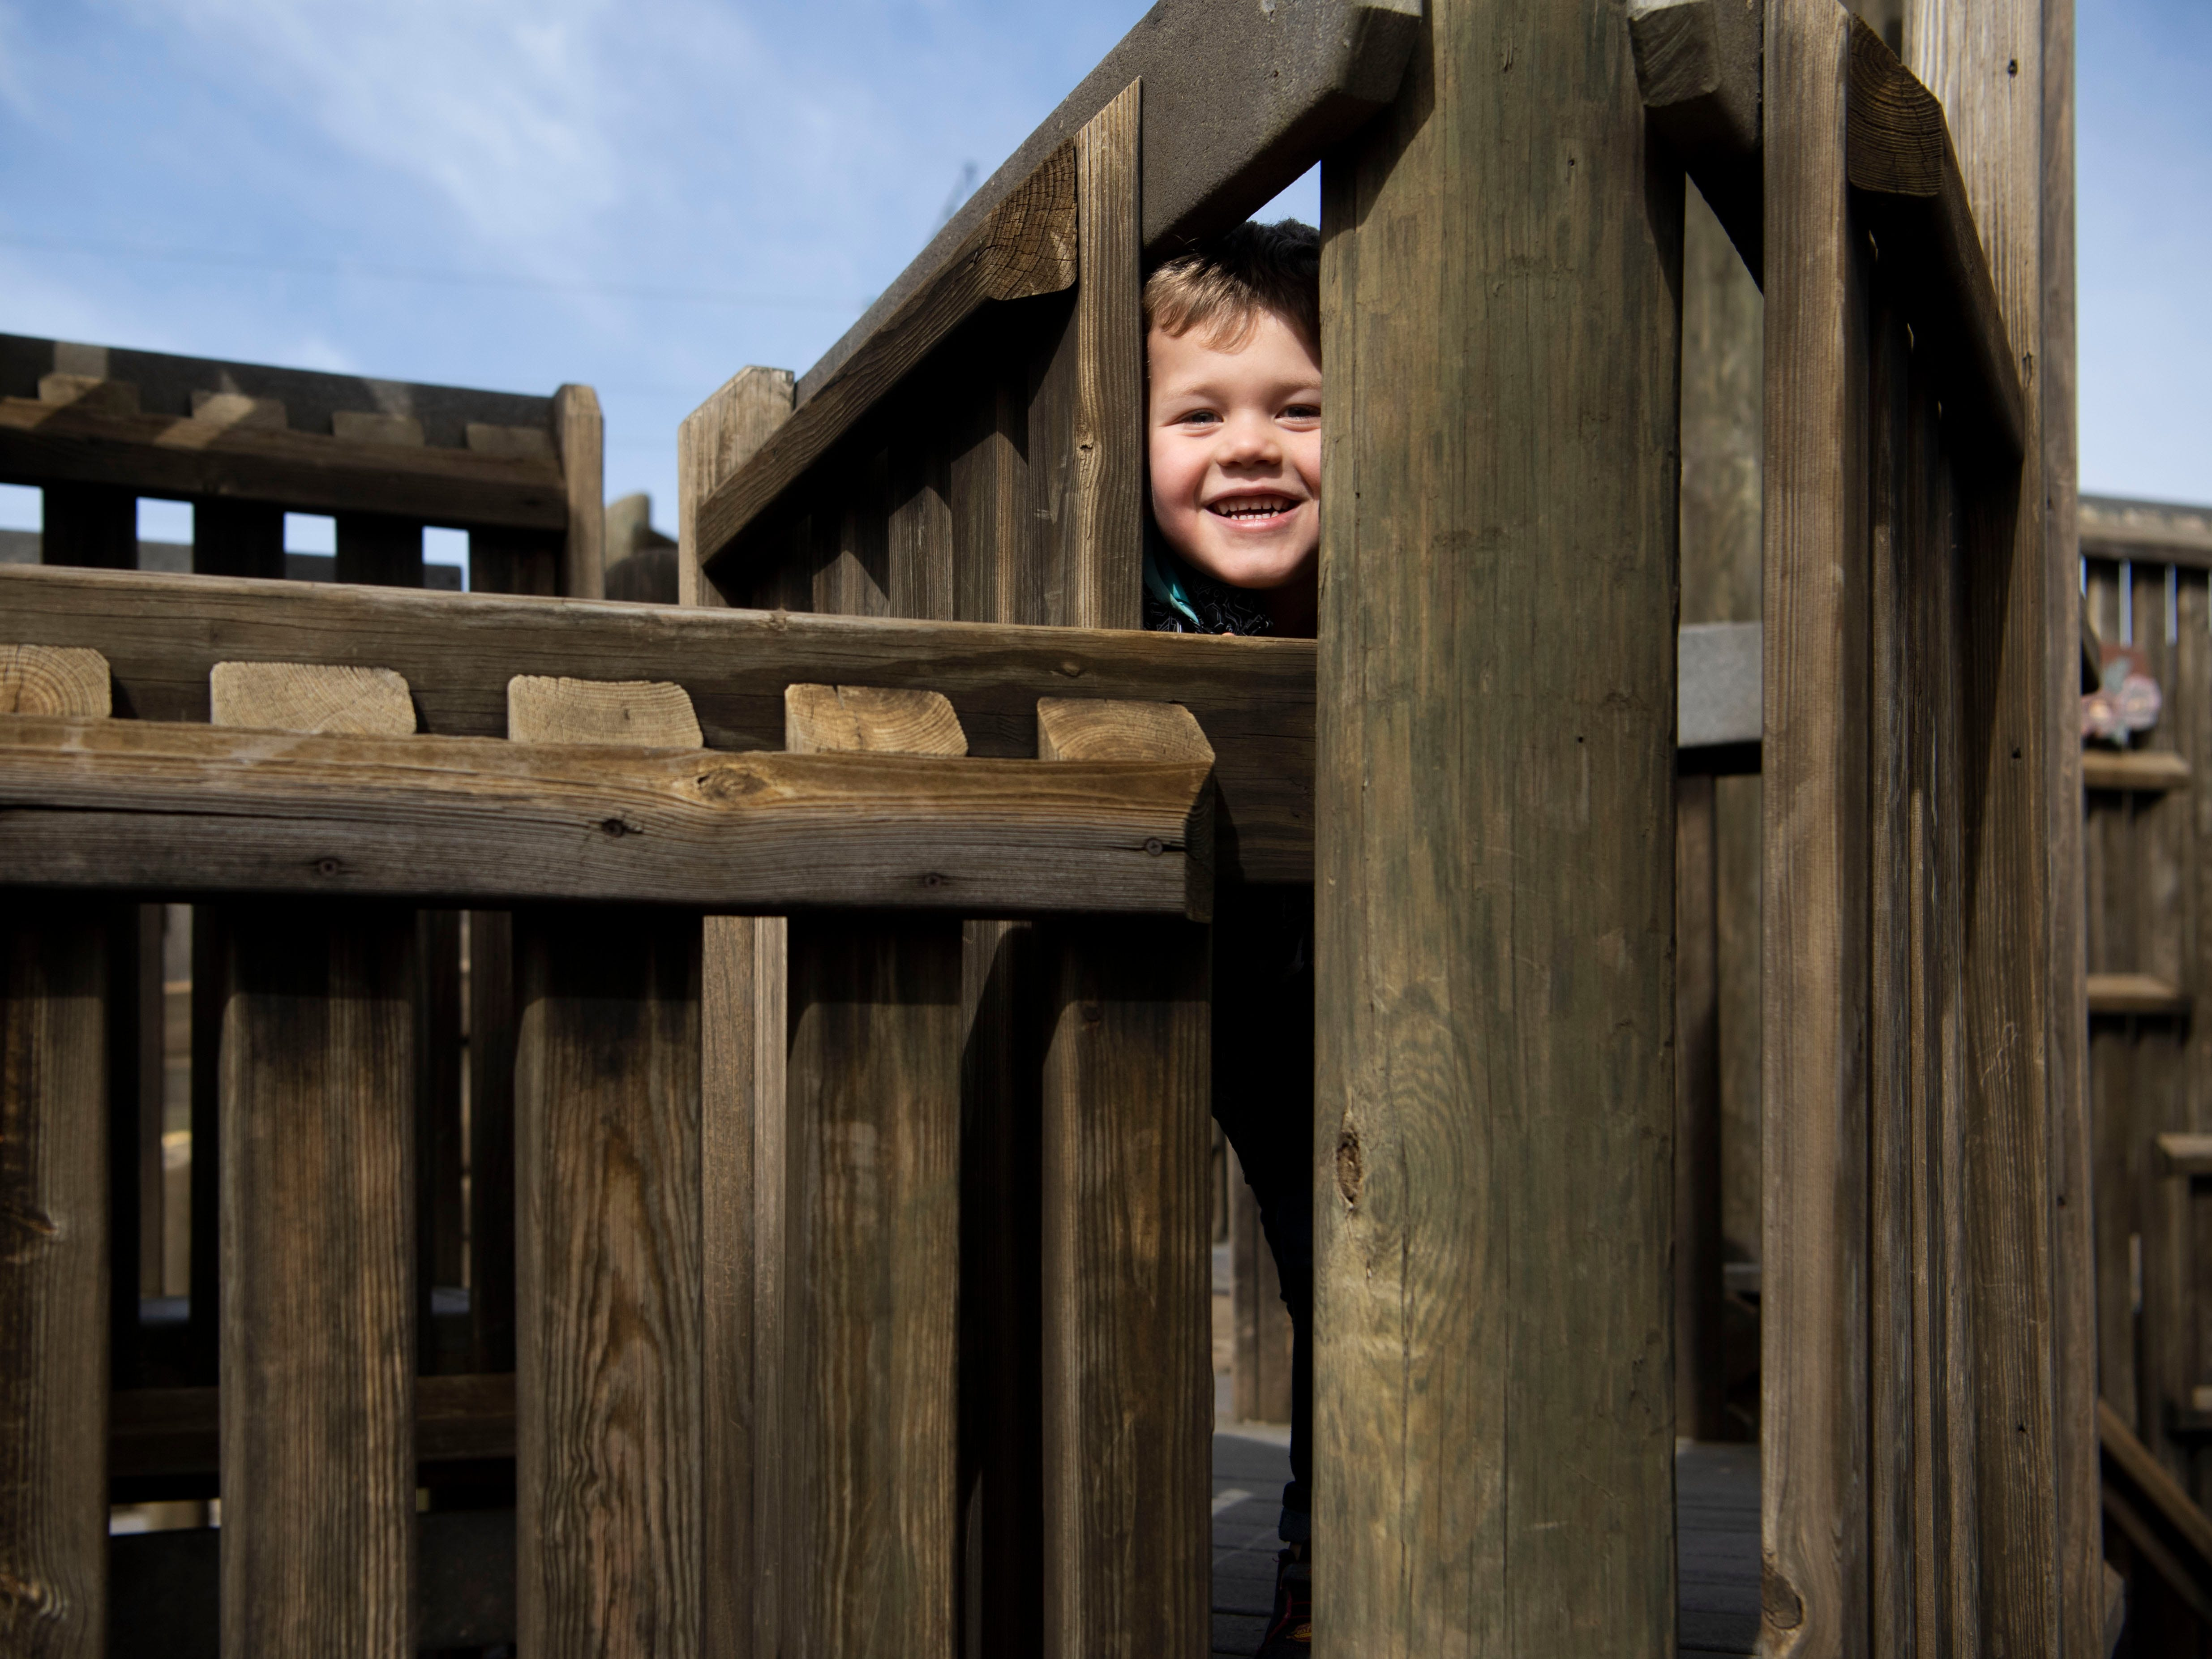 Daemon Nickell, 5, peeks out from between the wooden beams of the  Kids Palace Playground in Clinton, TN on Wednesday, February 13, 2019.